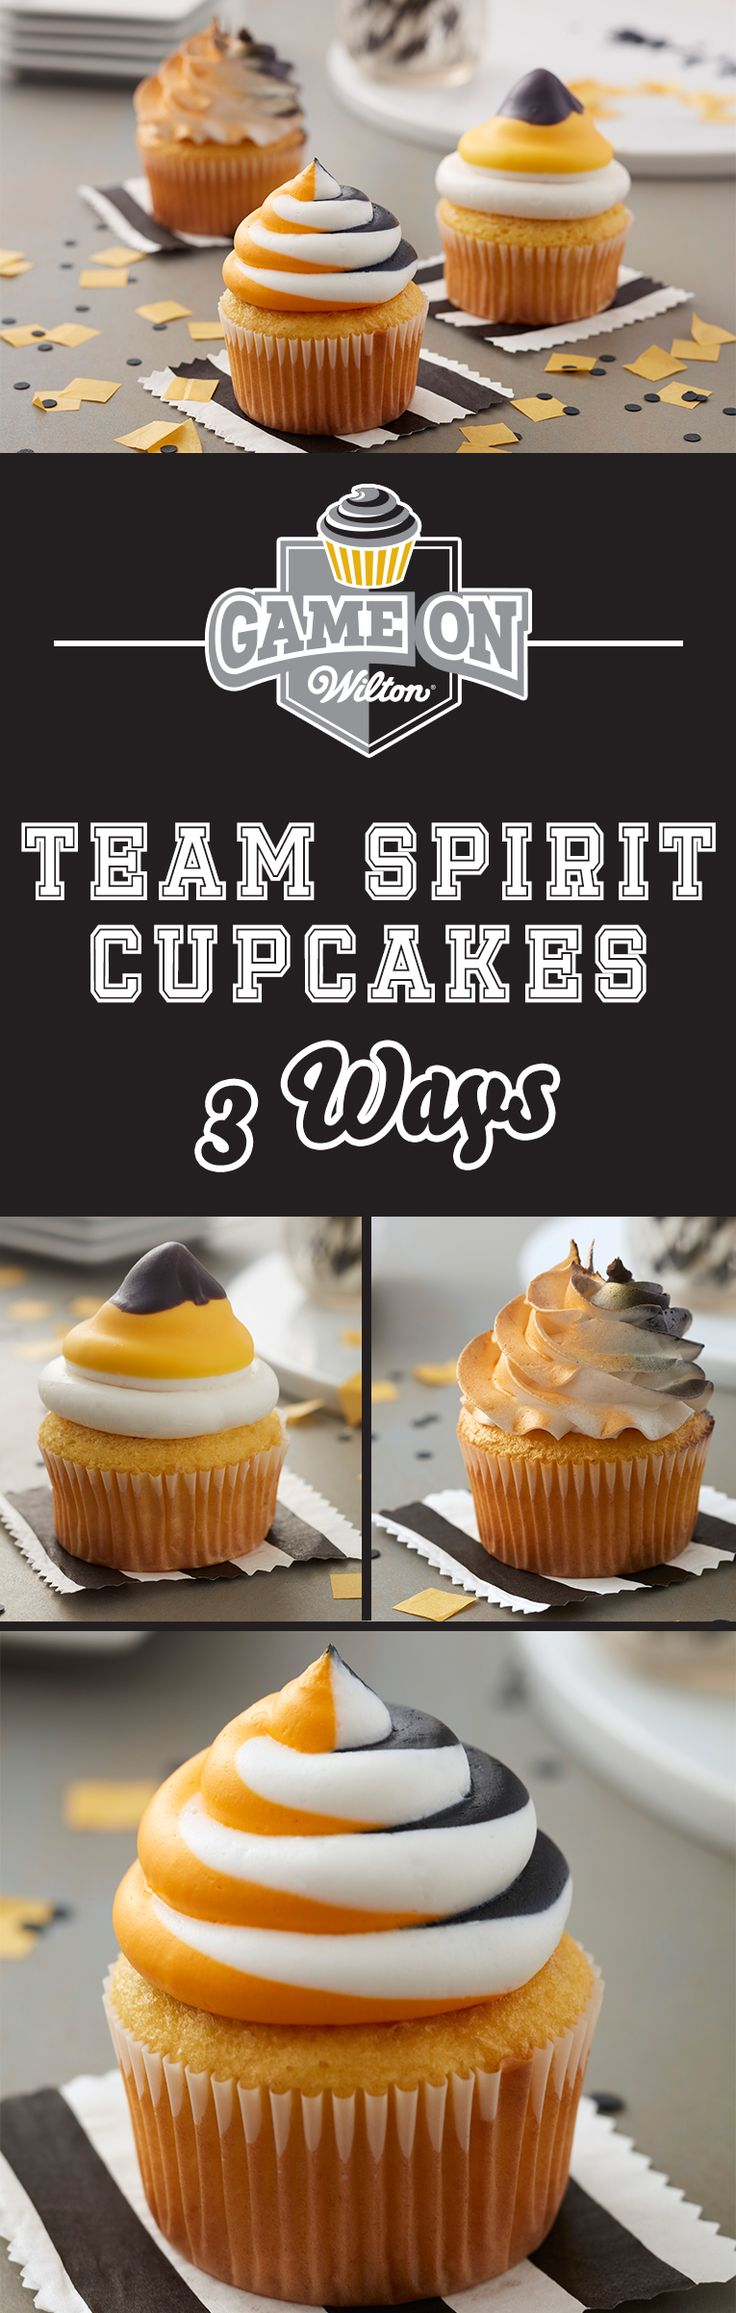 3 Ways to Make Team Spirit Cupcakes - Show off your team spirit with these Team Spirit Cupcakes. Great for homecoming celebrations, tailgating parties and big sporting events, these tasty cupcakes are a fun way to show off your team pride! Customize your cupcakes as needed by using the Color Right Performance Color System to create your own team colors!